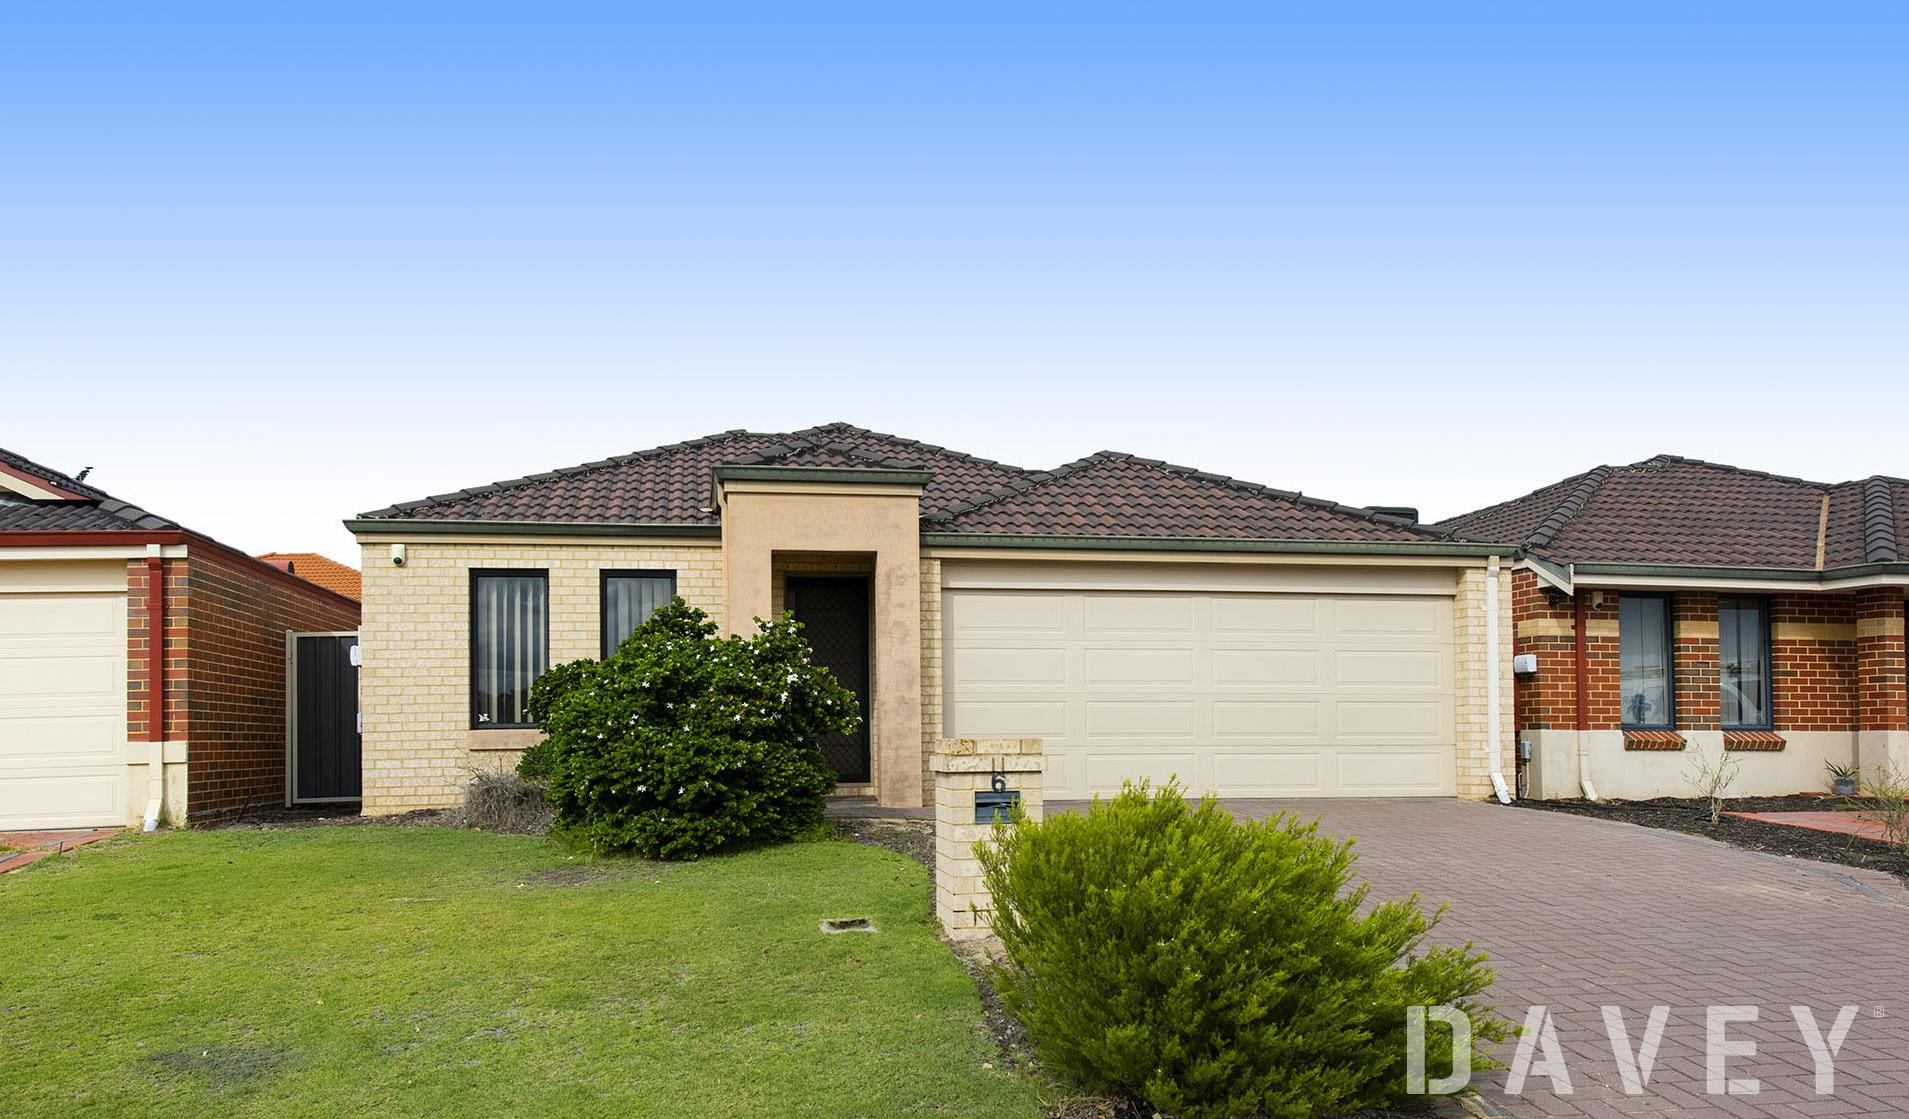 UNDER OFFER 1ST HOME OPEN WITH BRENDAN